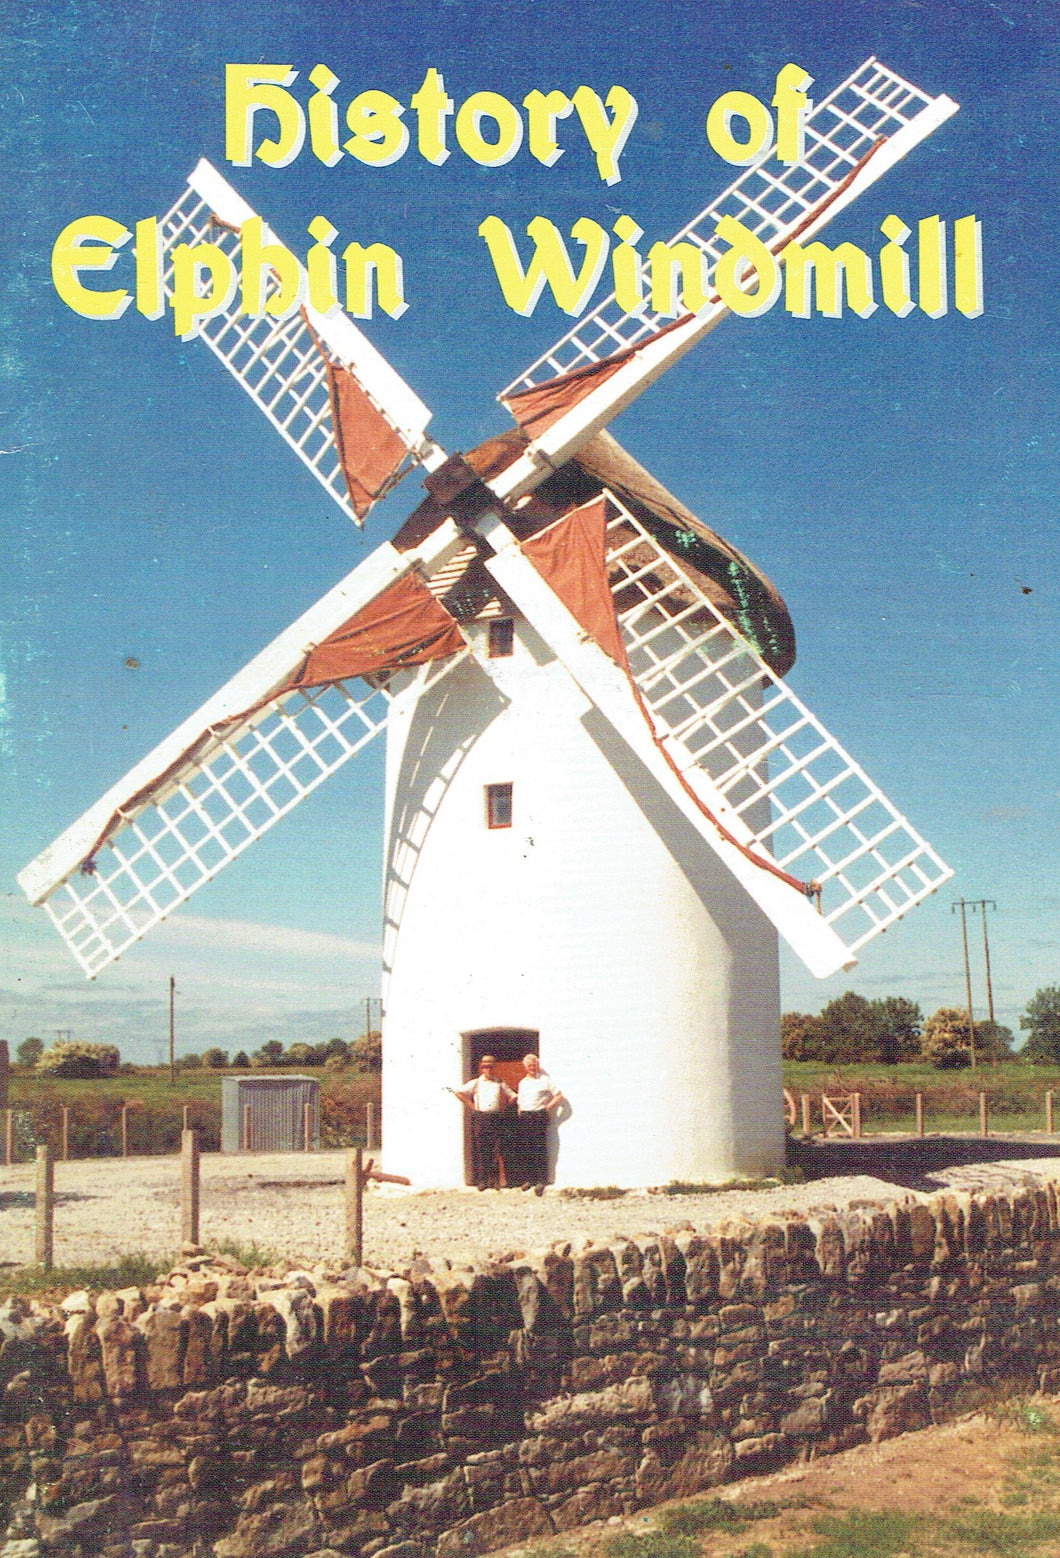 History of Elphin Windmill